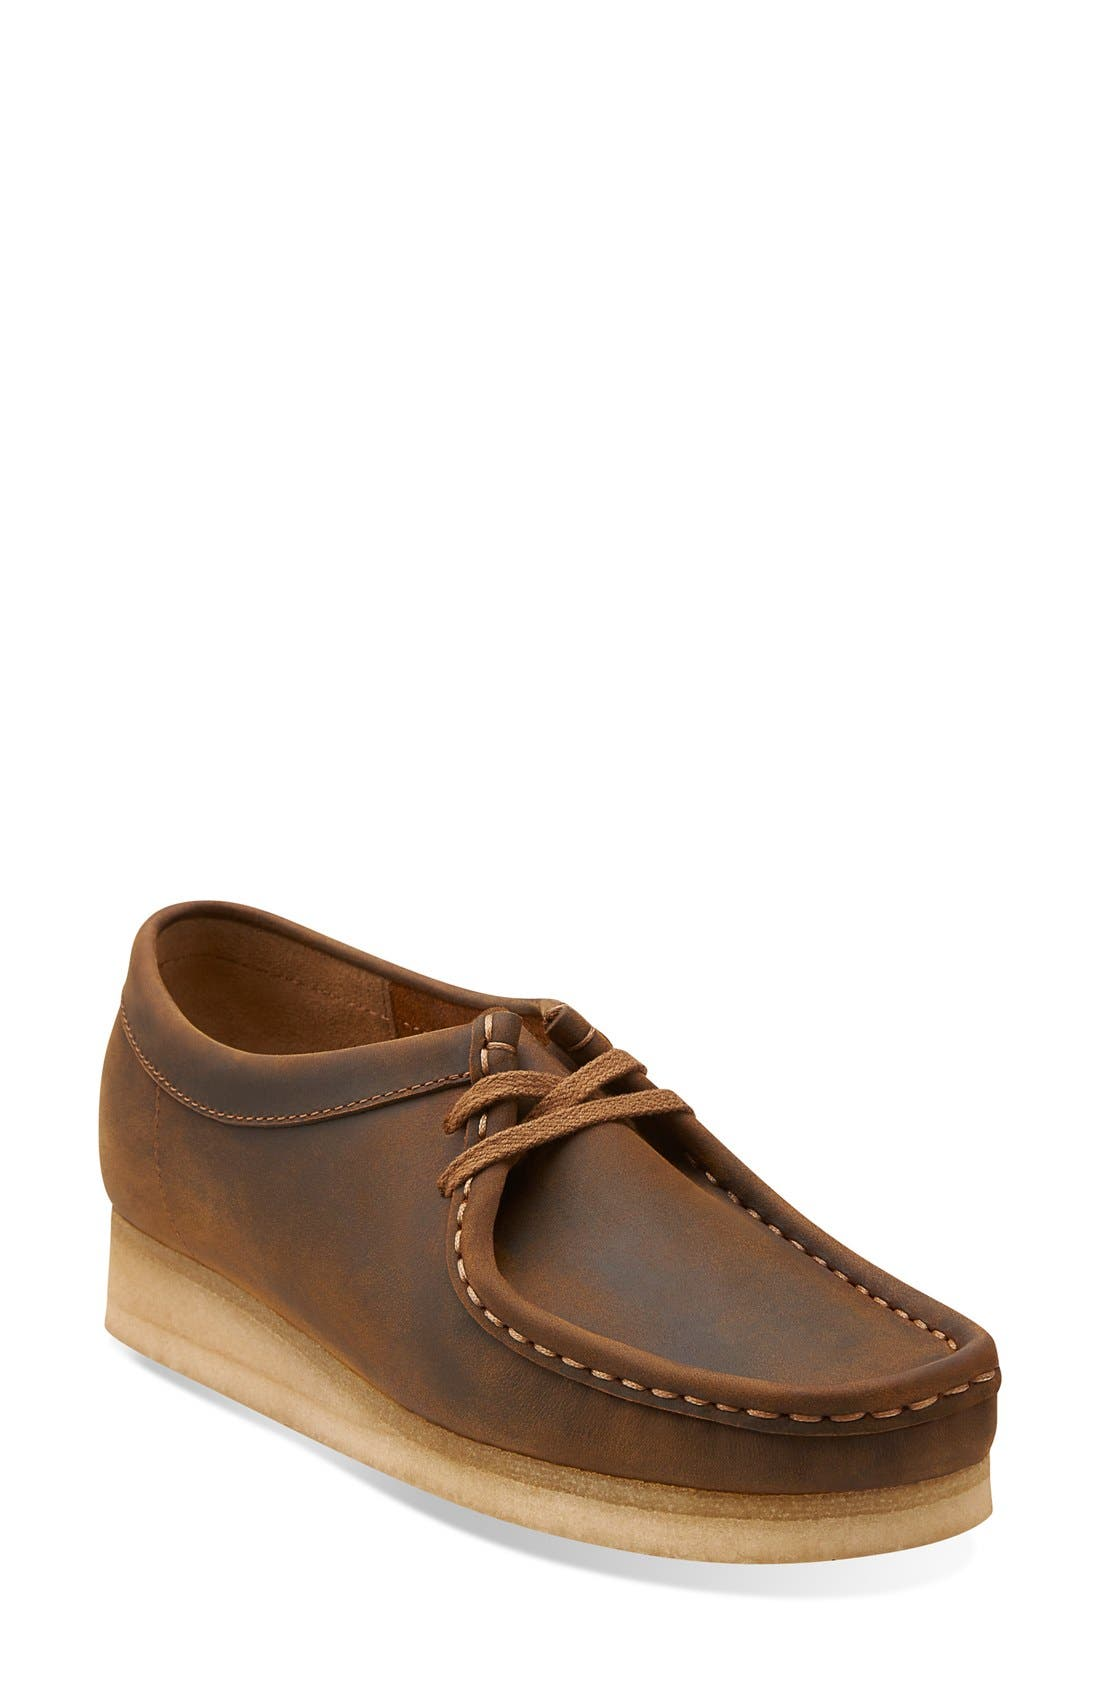 'Wallabee' Chukka Boot,                         Main,                         color, BEESWAX LEATHER